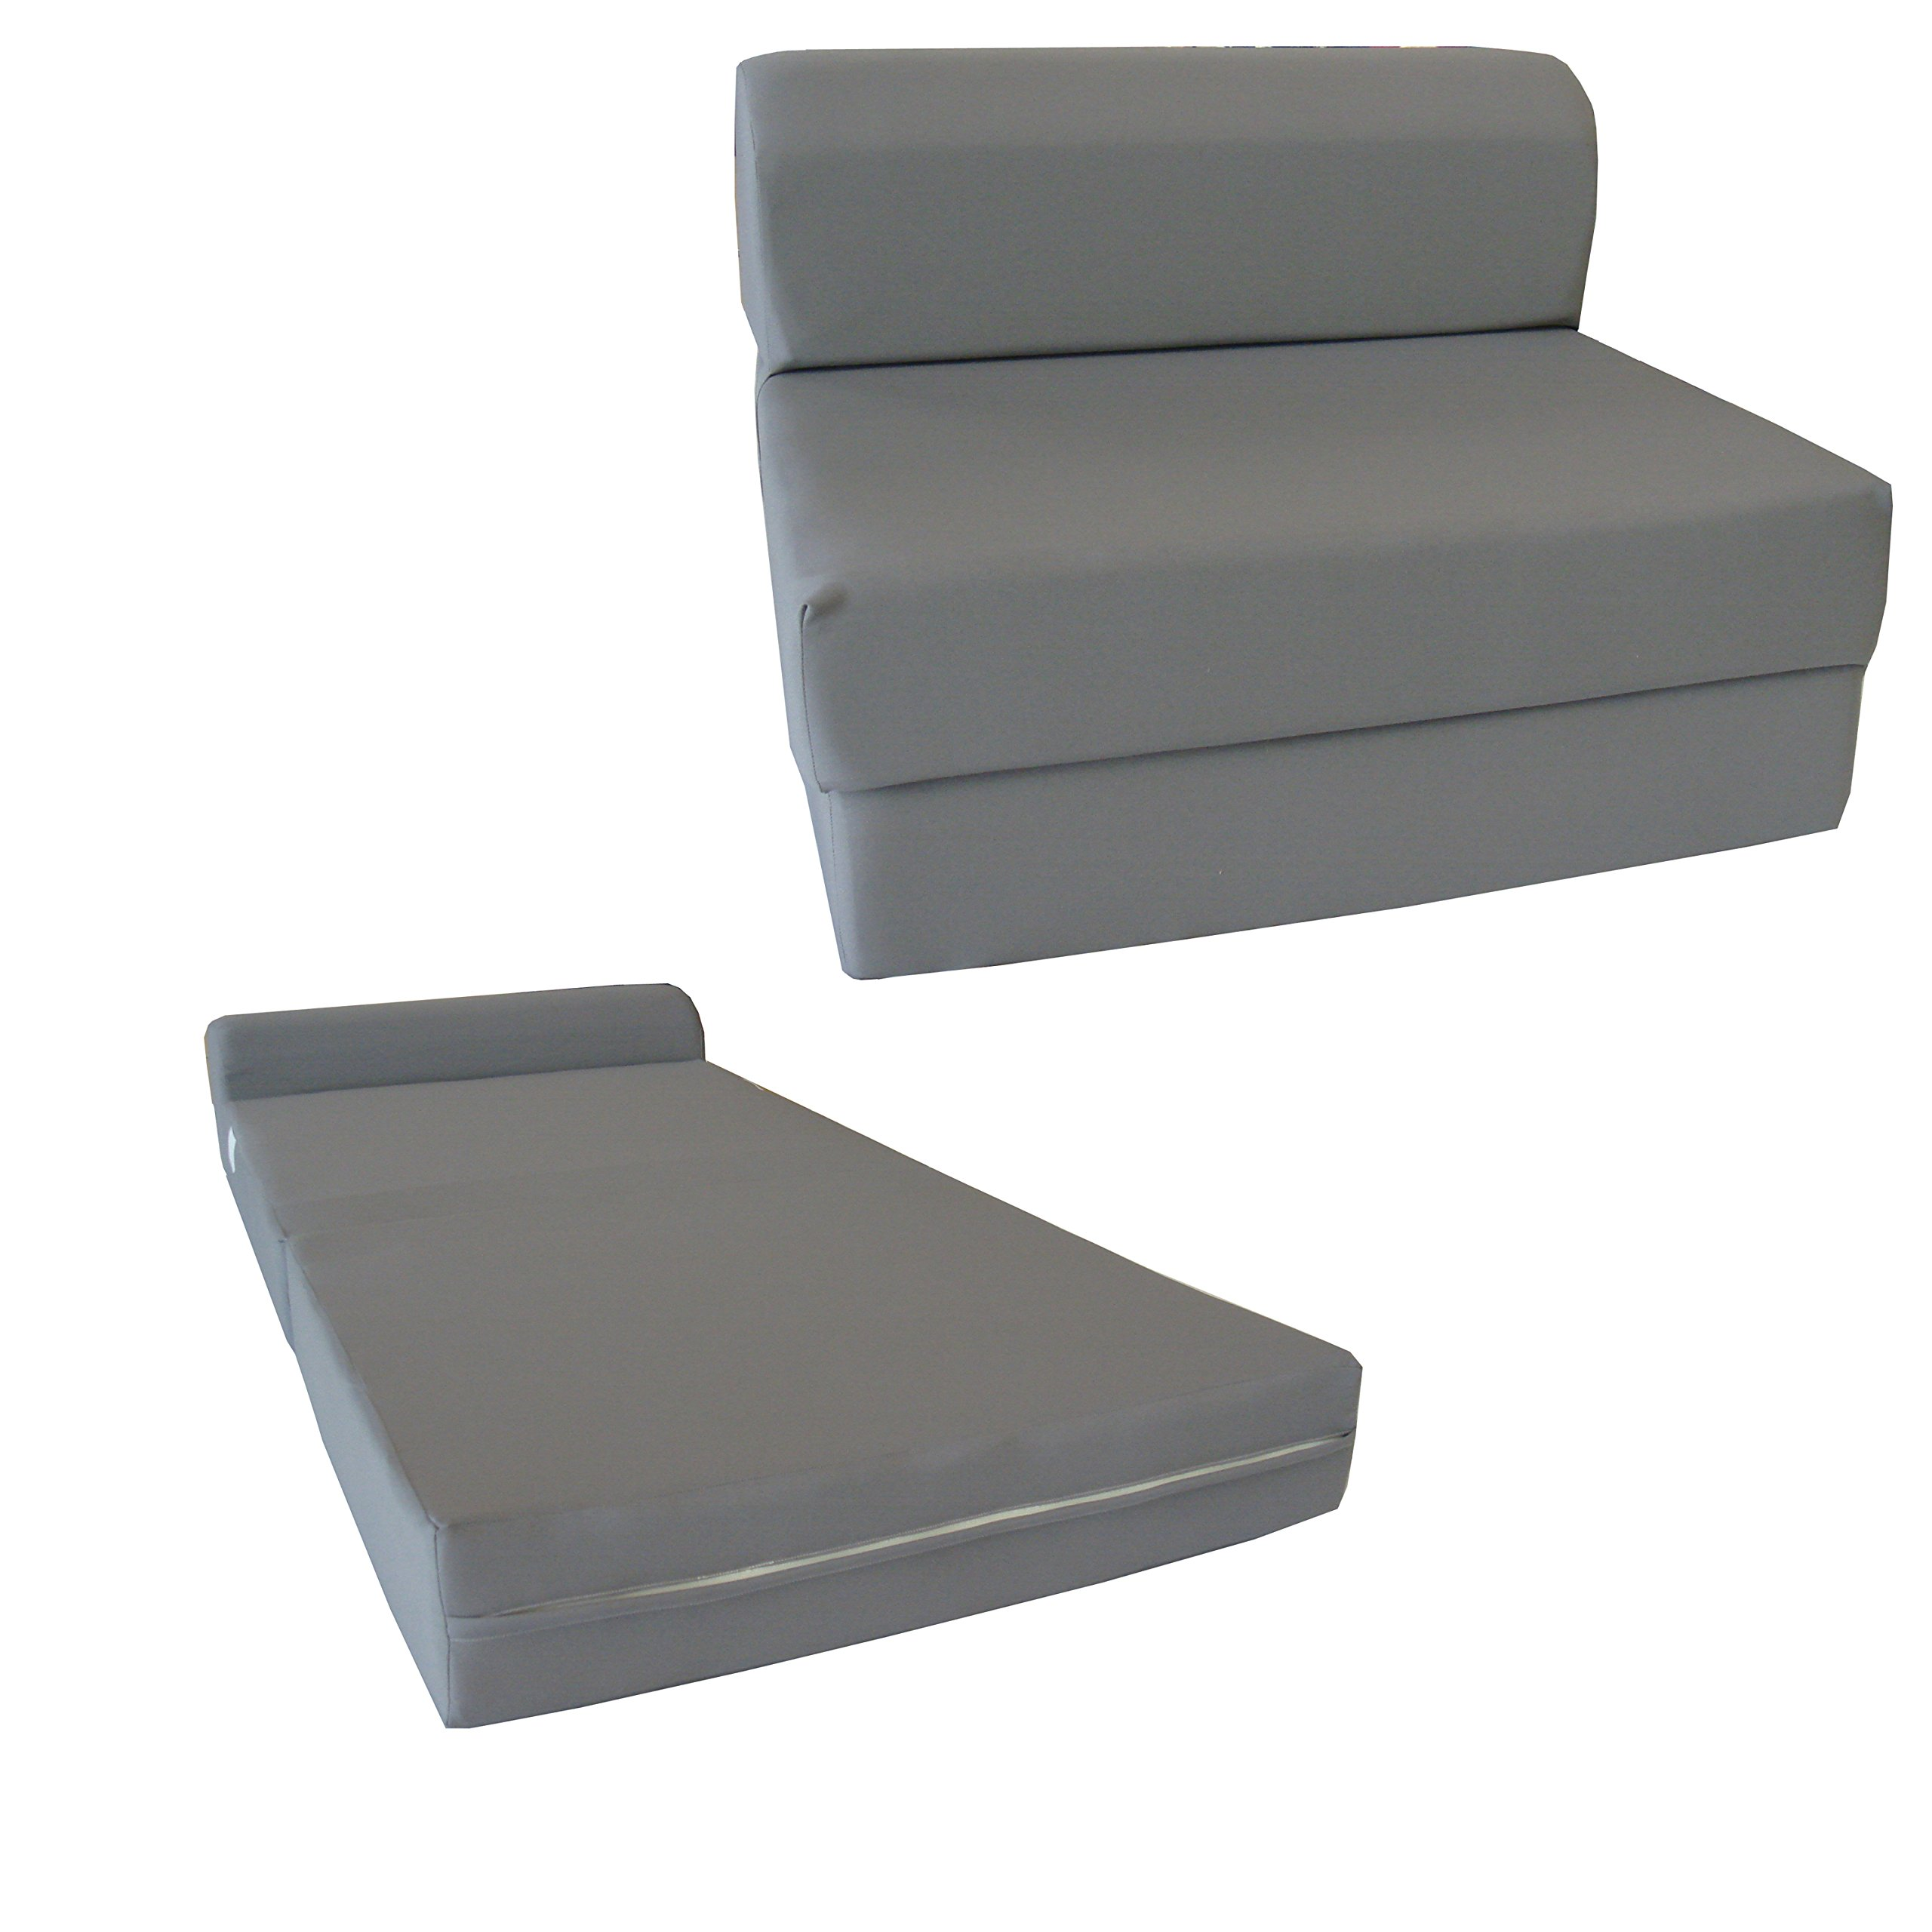 Sleeper Chair Folding Foam Bed - Studio Foam Mattress, Folded Sofa. (6Tx36Wx70L, Gray (Charcoal)) by ADfuton